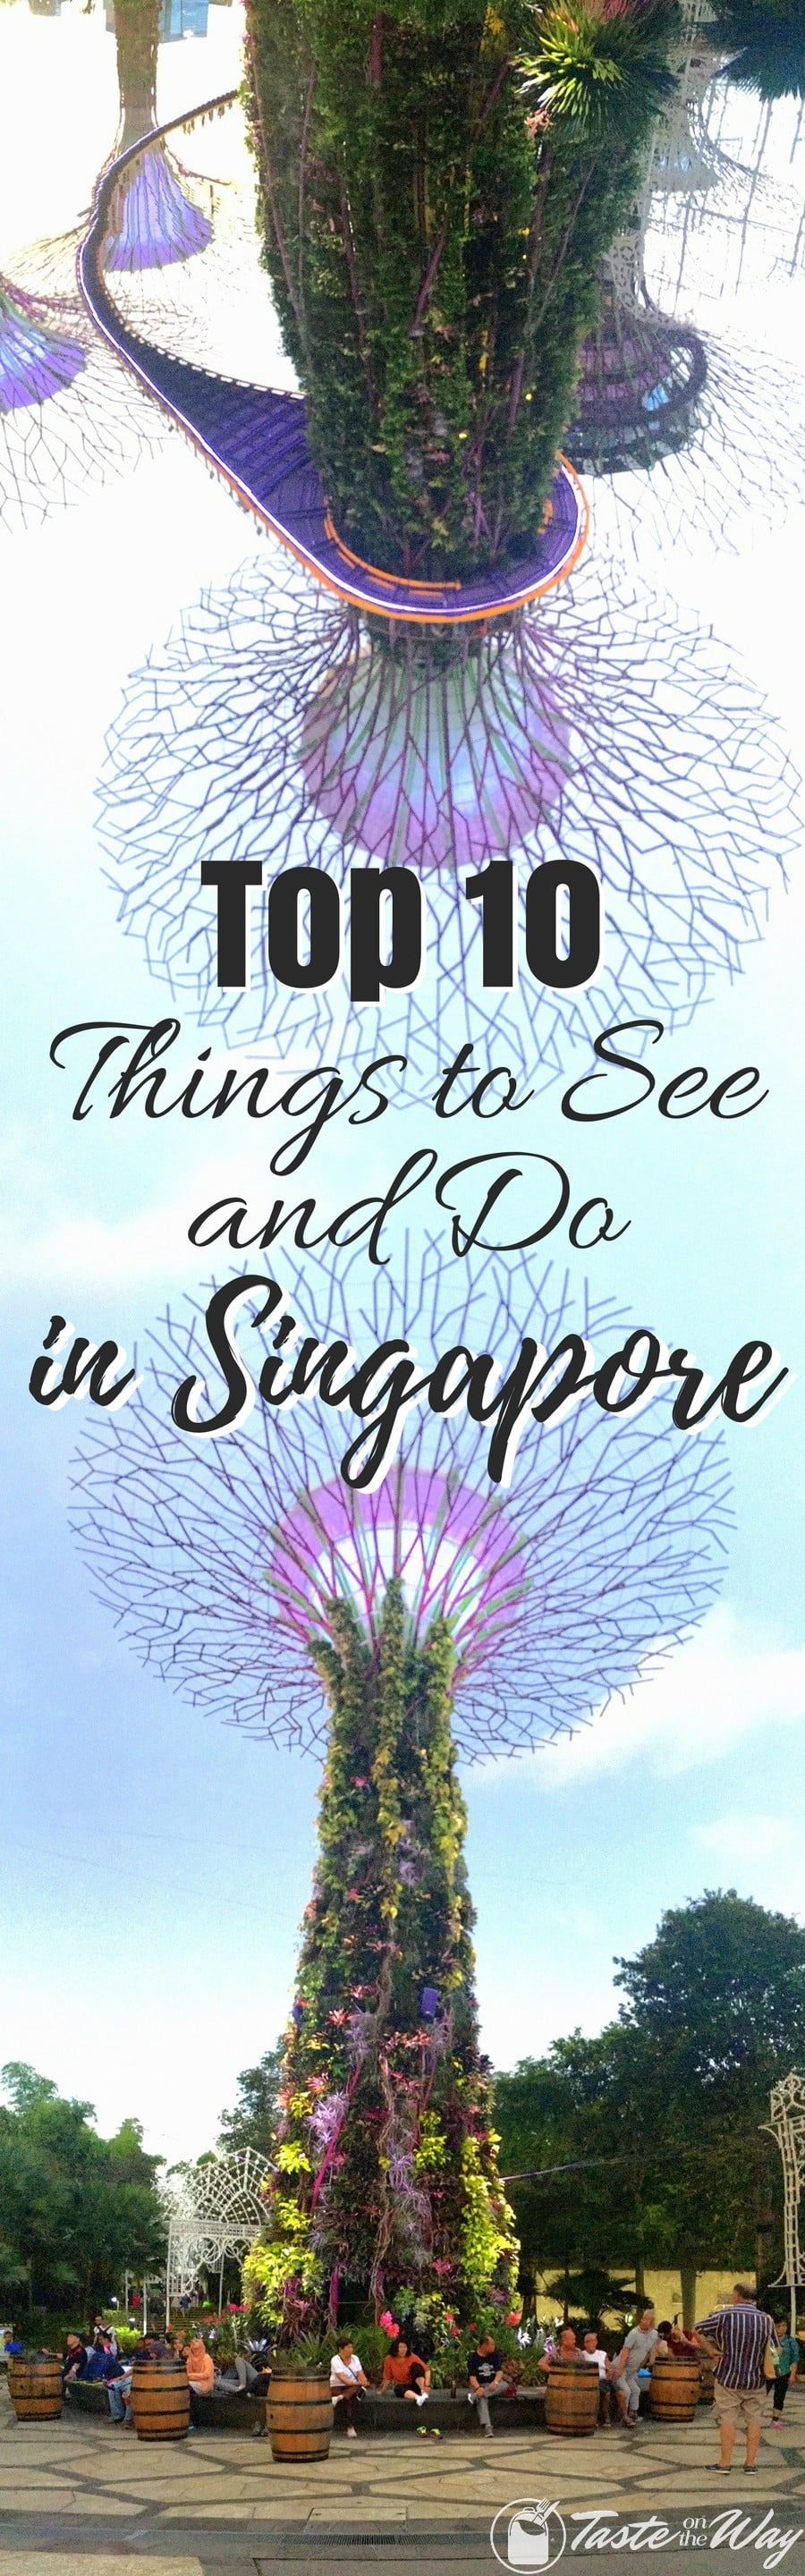 Top 10 Best Things to Do in Singapore - Check out the top 10 #thingstodo in #Singapore! #travel #photography @tasteontheway